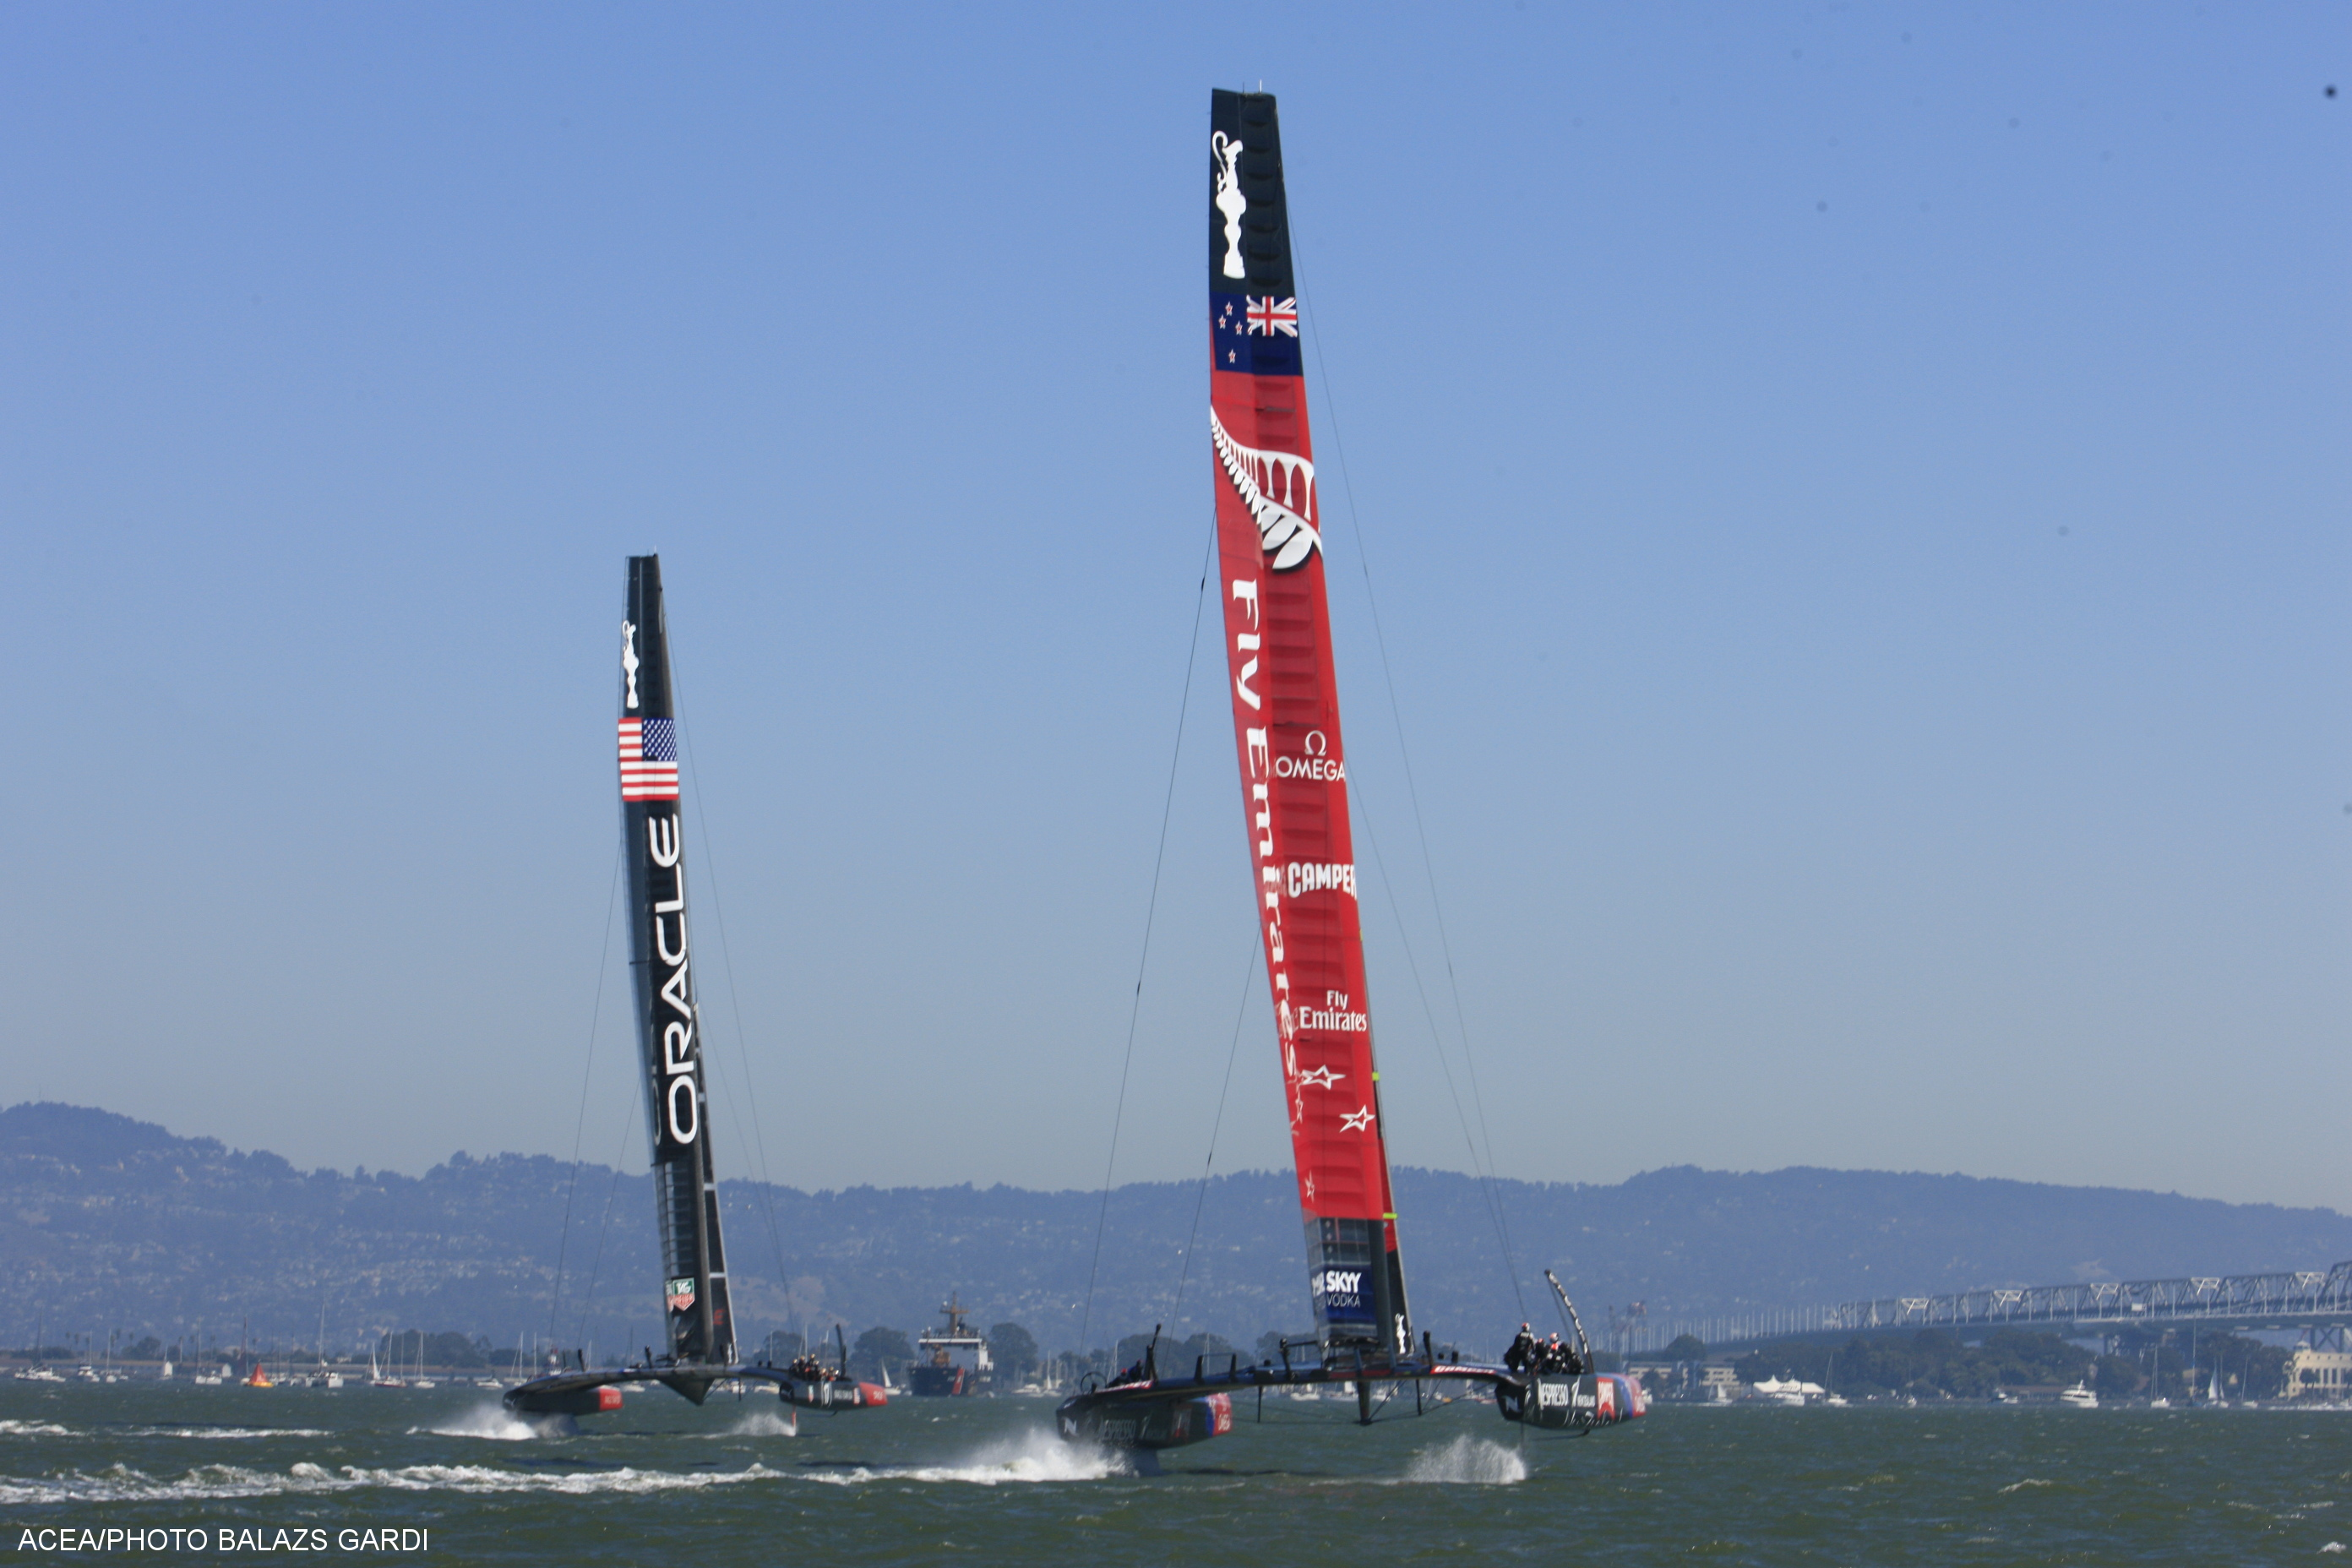 Team New Zealand wins 1st race on Day 2 of America's Cup Finals